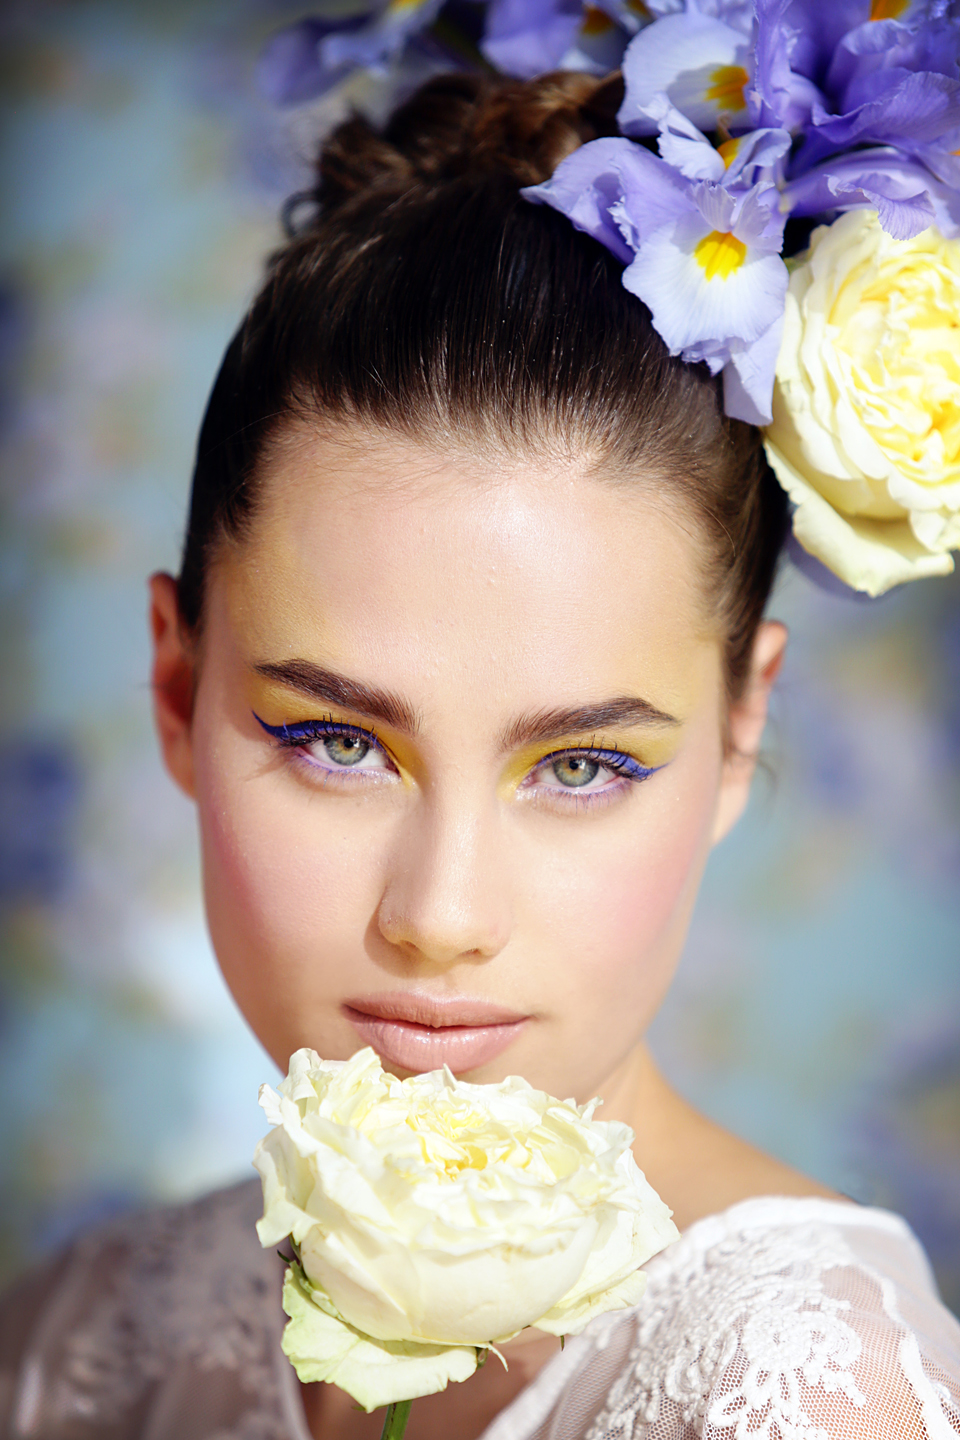 beauty-shoot-floral-fantasy-model-shoot-sam-scarborough-makeup-estilo-photography-johannesburg-photographers__.jpg